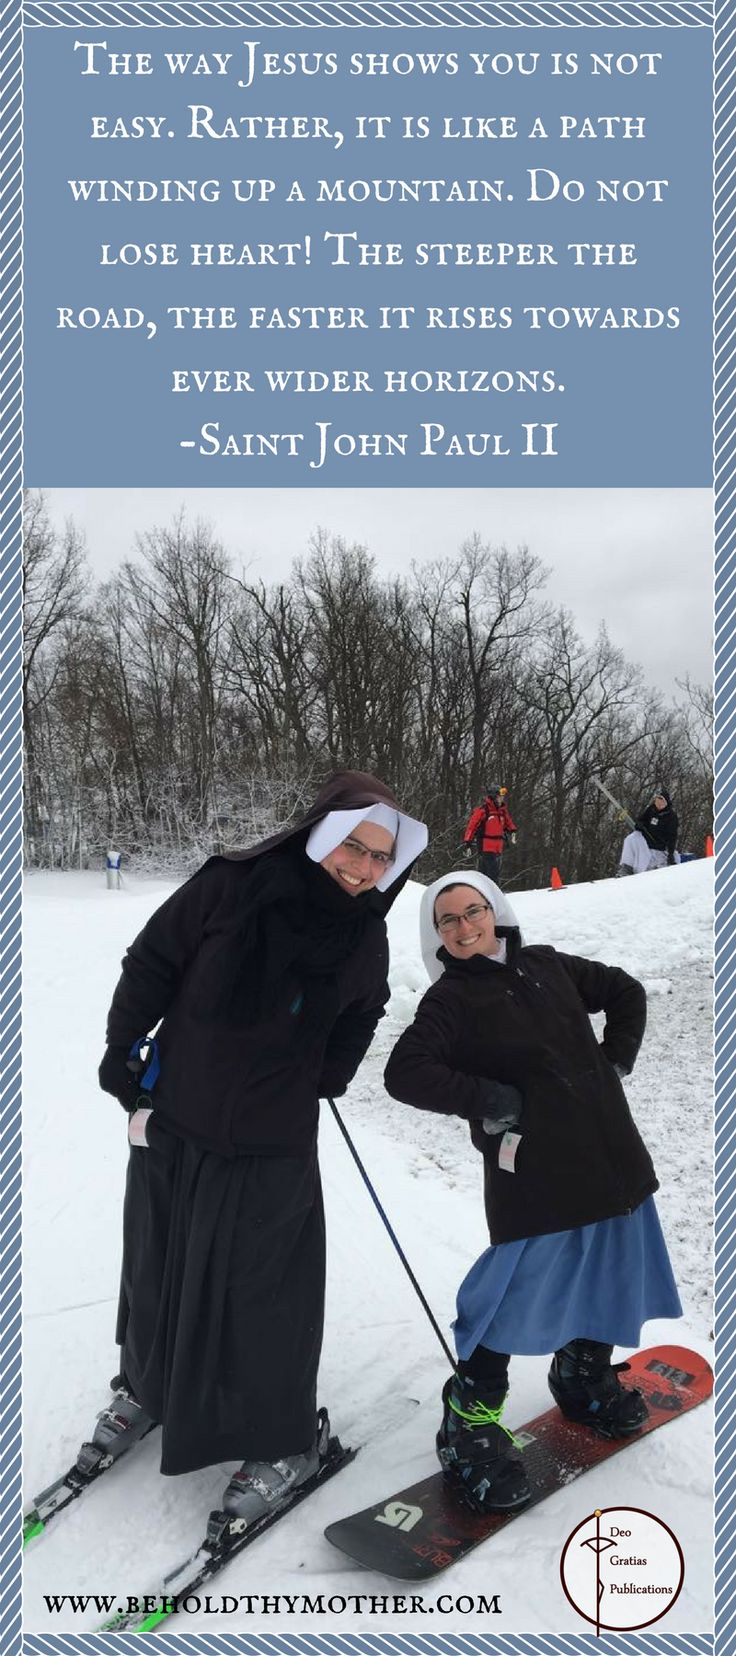 "Sr. Gaudia and Sr. Veritas hitting the slopes. ""Behold Thy Mother"", a Scriptural Rosary book, is steeped in beauty and tradition with sacred art, meditations by Church fathers, popes, saints and esteemed Catholic theologians, a side by side English/Latin translation of the Scripture verses, and medieval graphics. This beautiful Catholic prayer book and bears the imprimatur by Most Reverend Peter F. Christensen, Bishop of the Diocese of Boise and has received 5 star reviews."